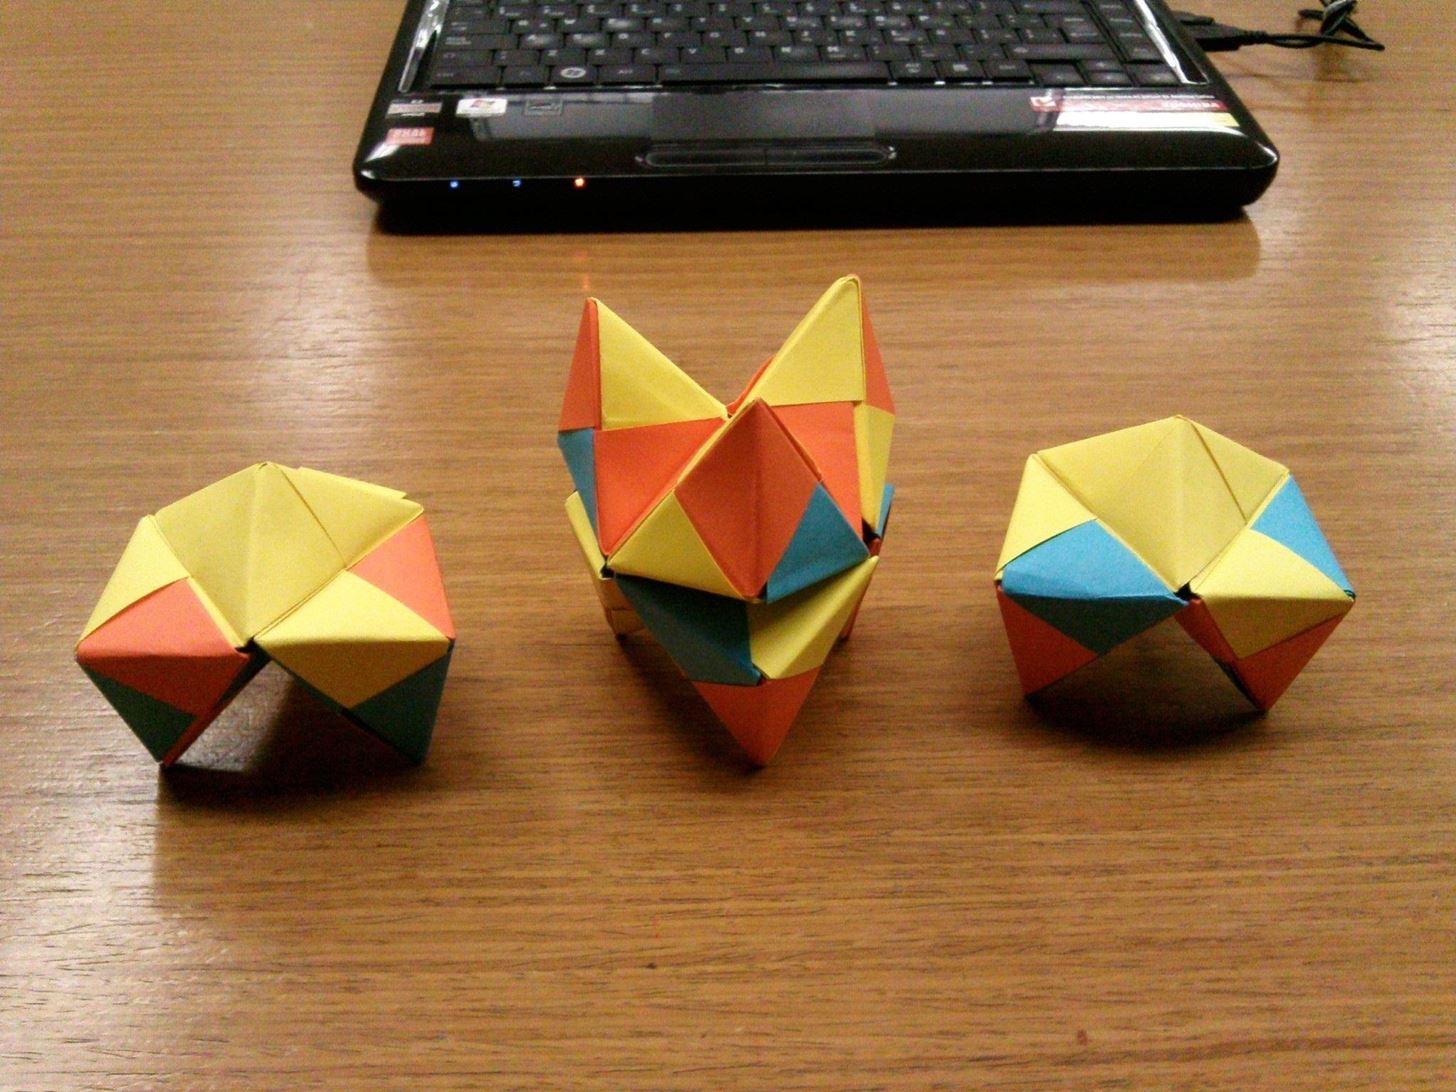 Modular Origami How To Make A Cube Octahedron Icosahedron From Diagrams Sonobe Units Math Craft Wonderhowto